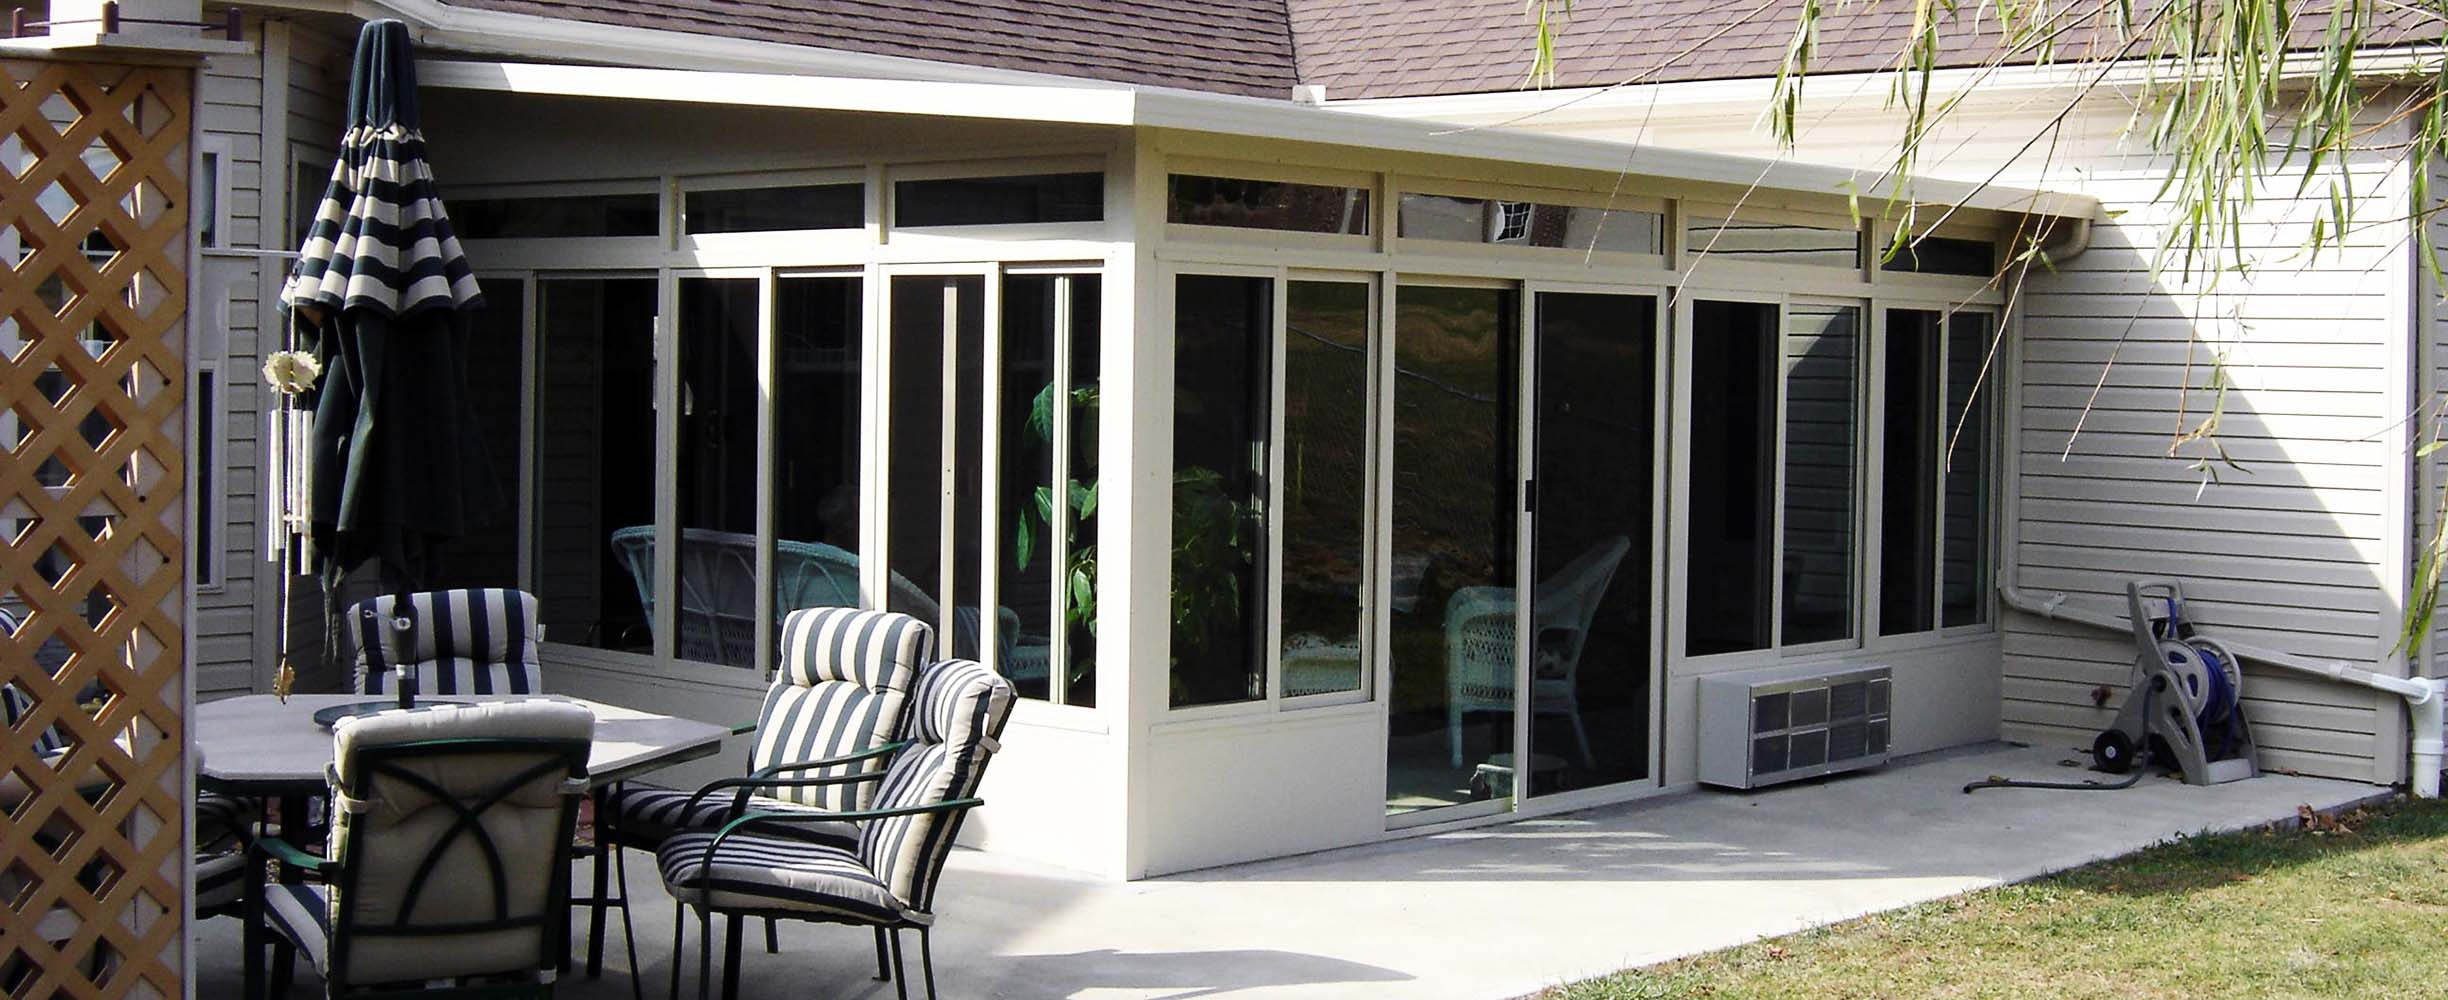 Sunroom designed and implemented for all seasons effectively expanding the house in a practical and cofortable way!